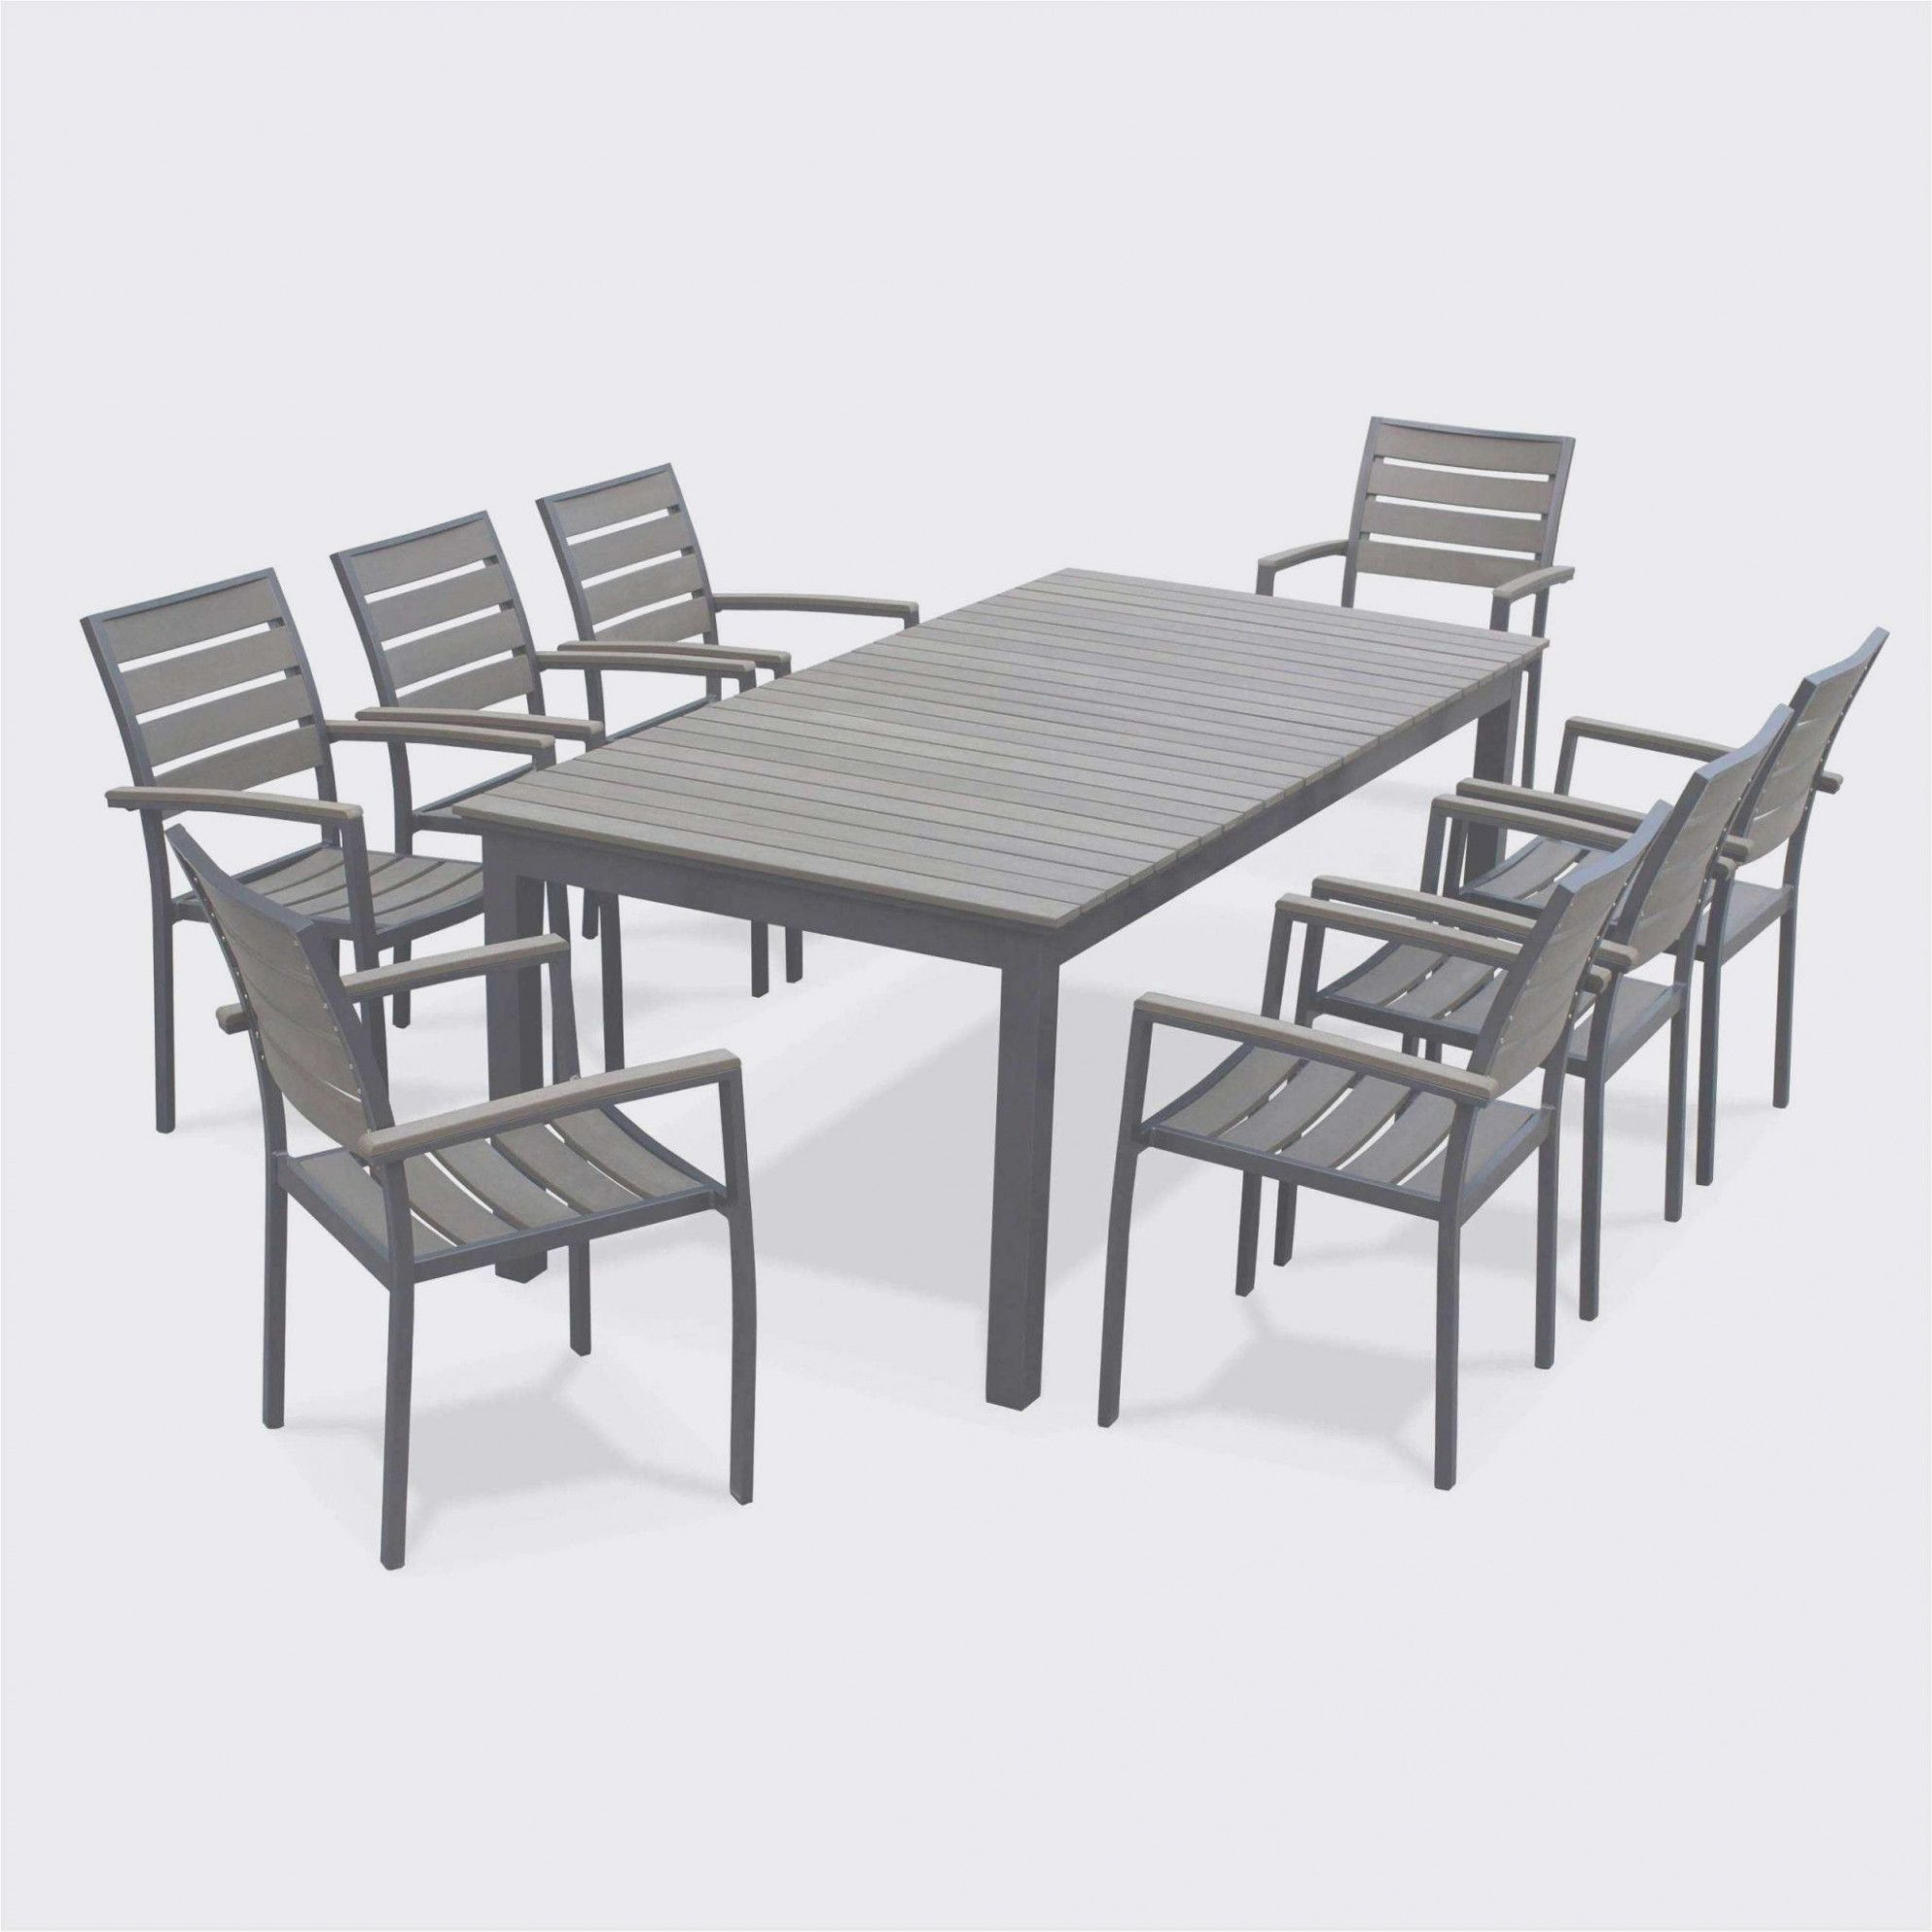 Hubo Salon De Jardin Outdoor Kitchen Cabinets Round Outdoor Table Outdoor Tables